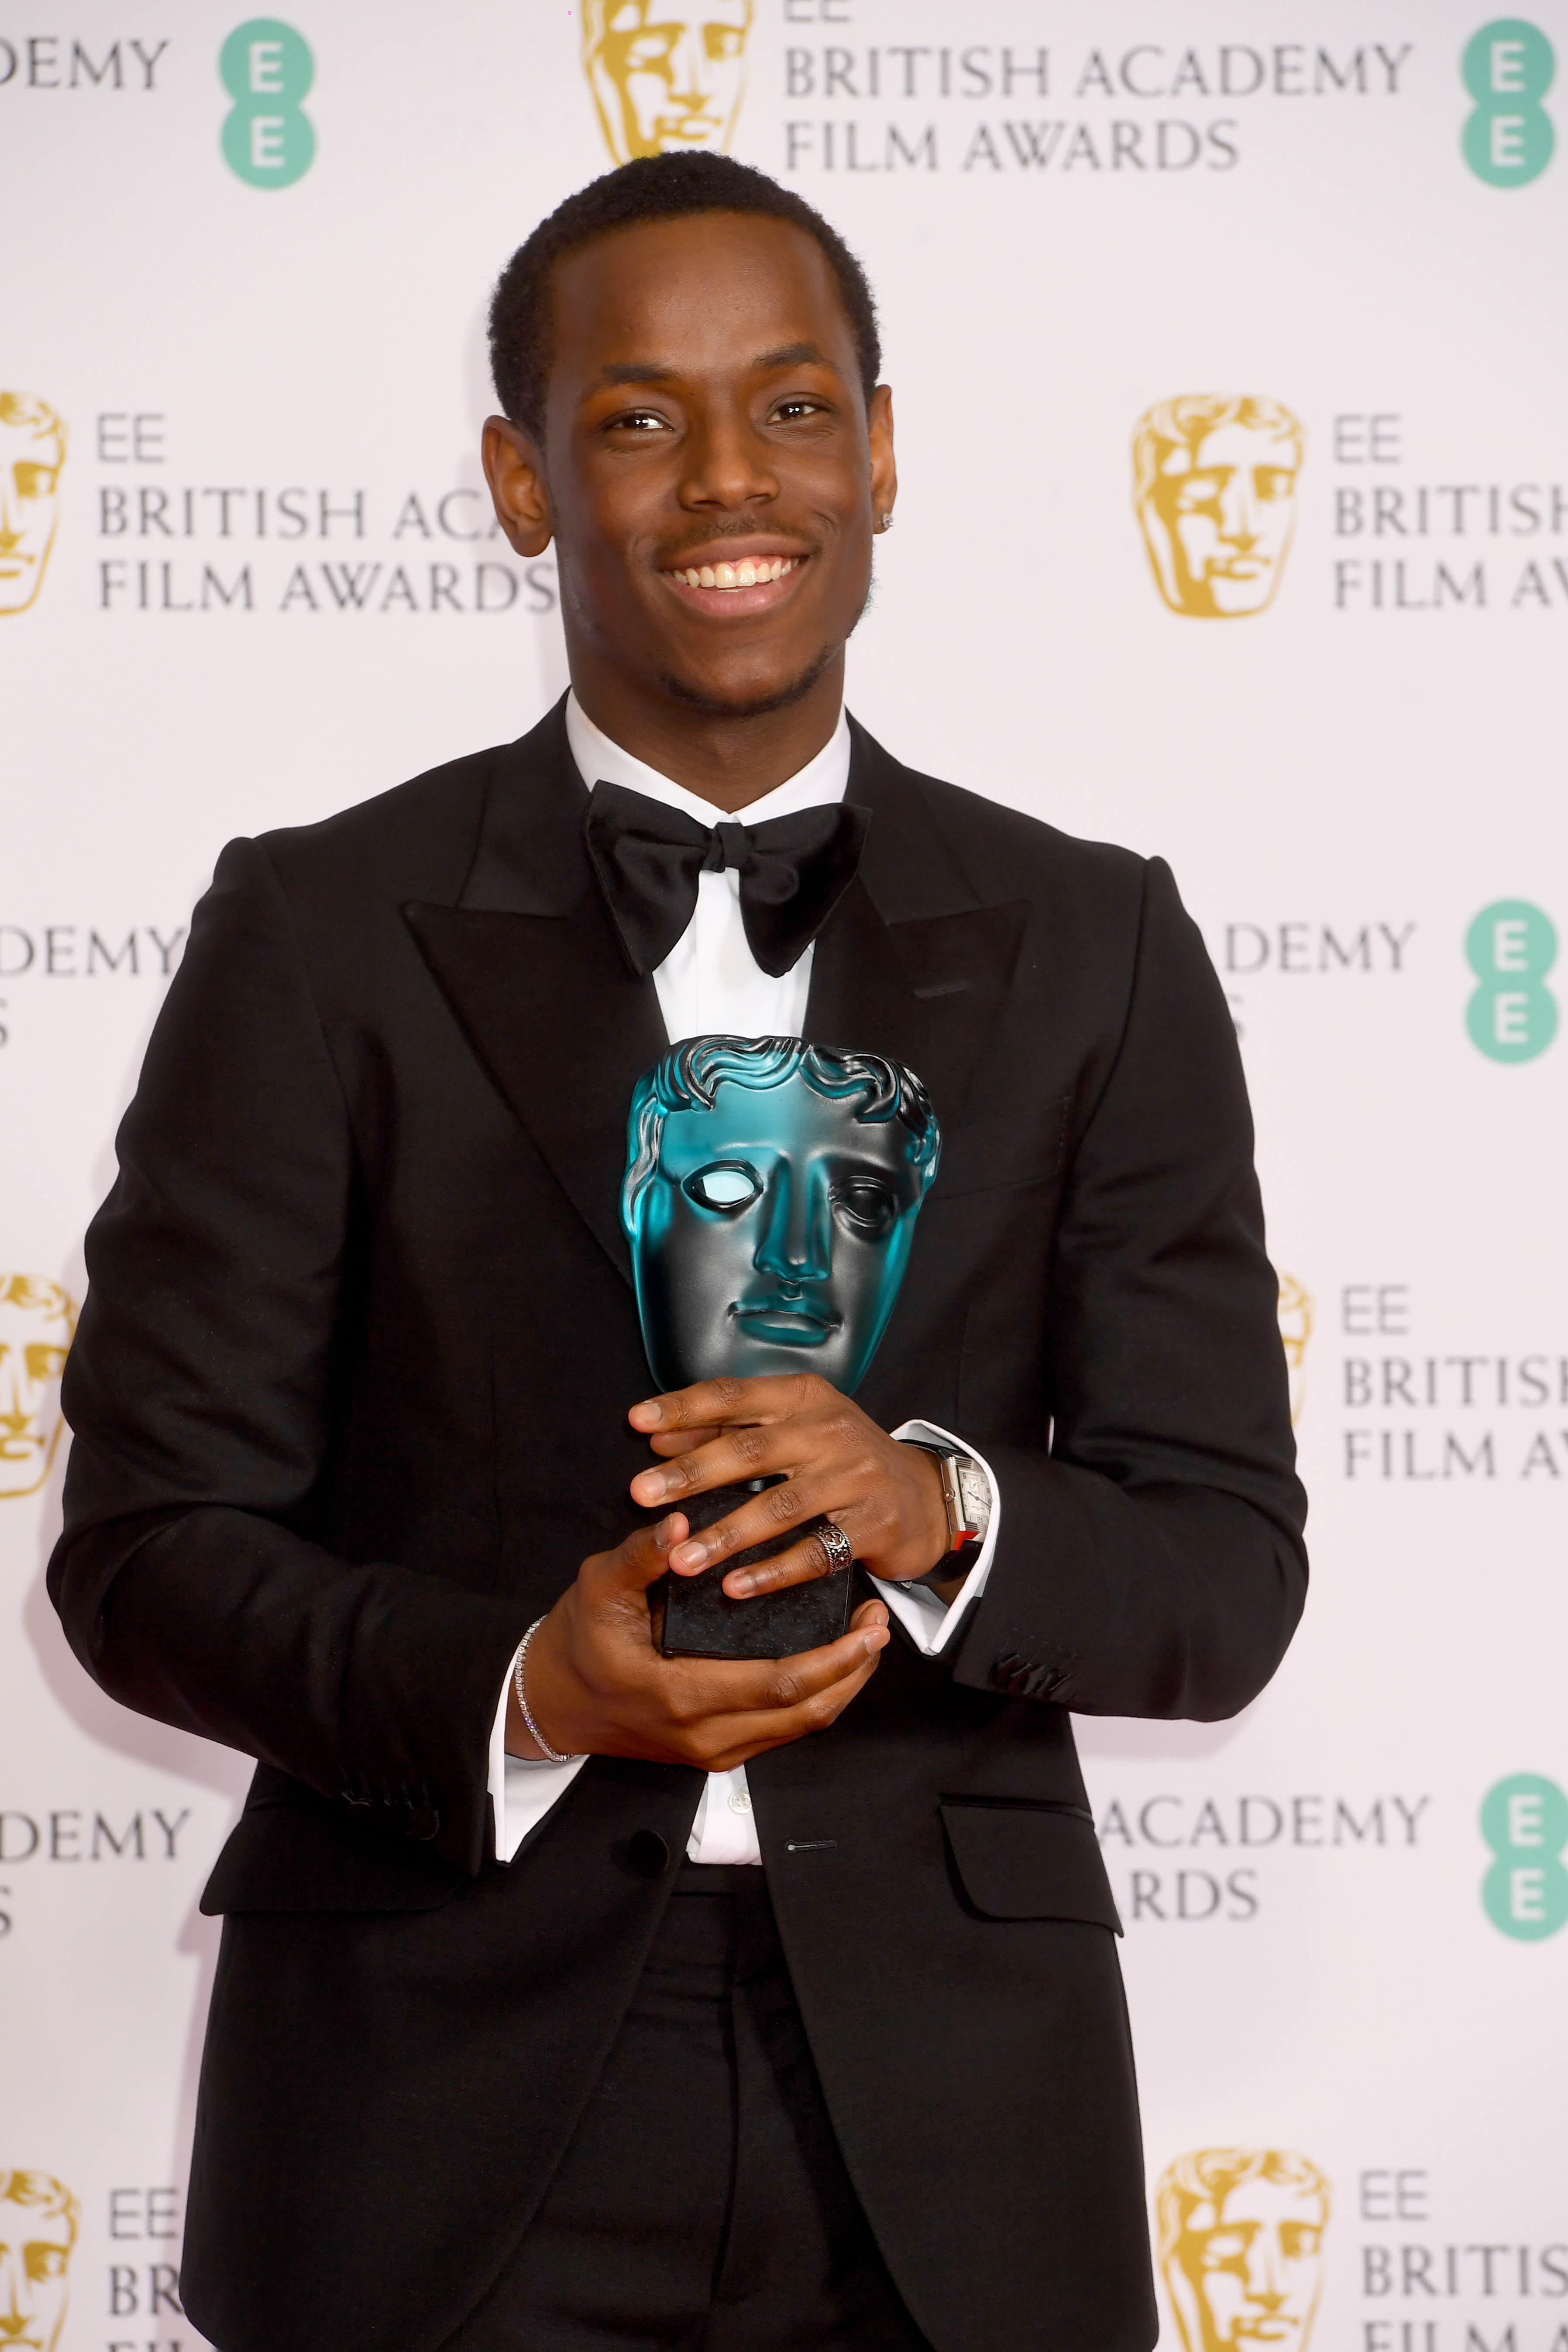 Micheal Ward at an event for EE British Academy Film Awards (2020)